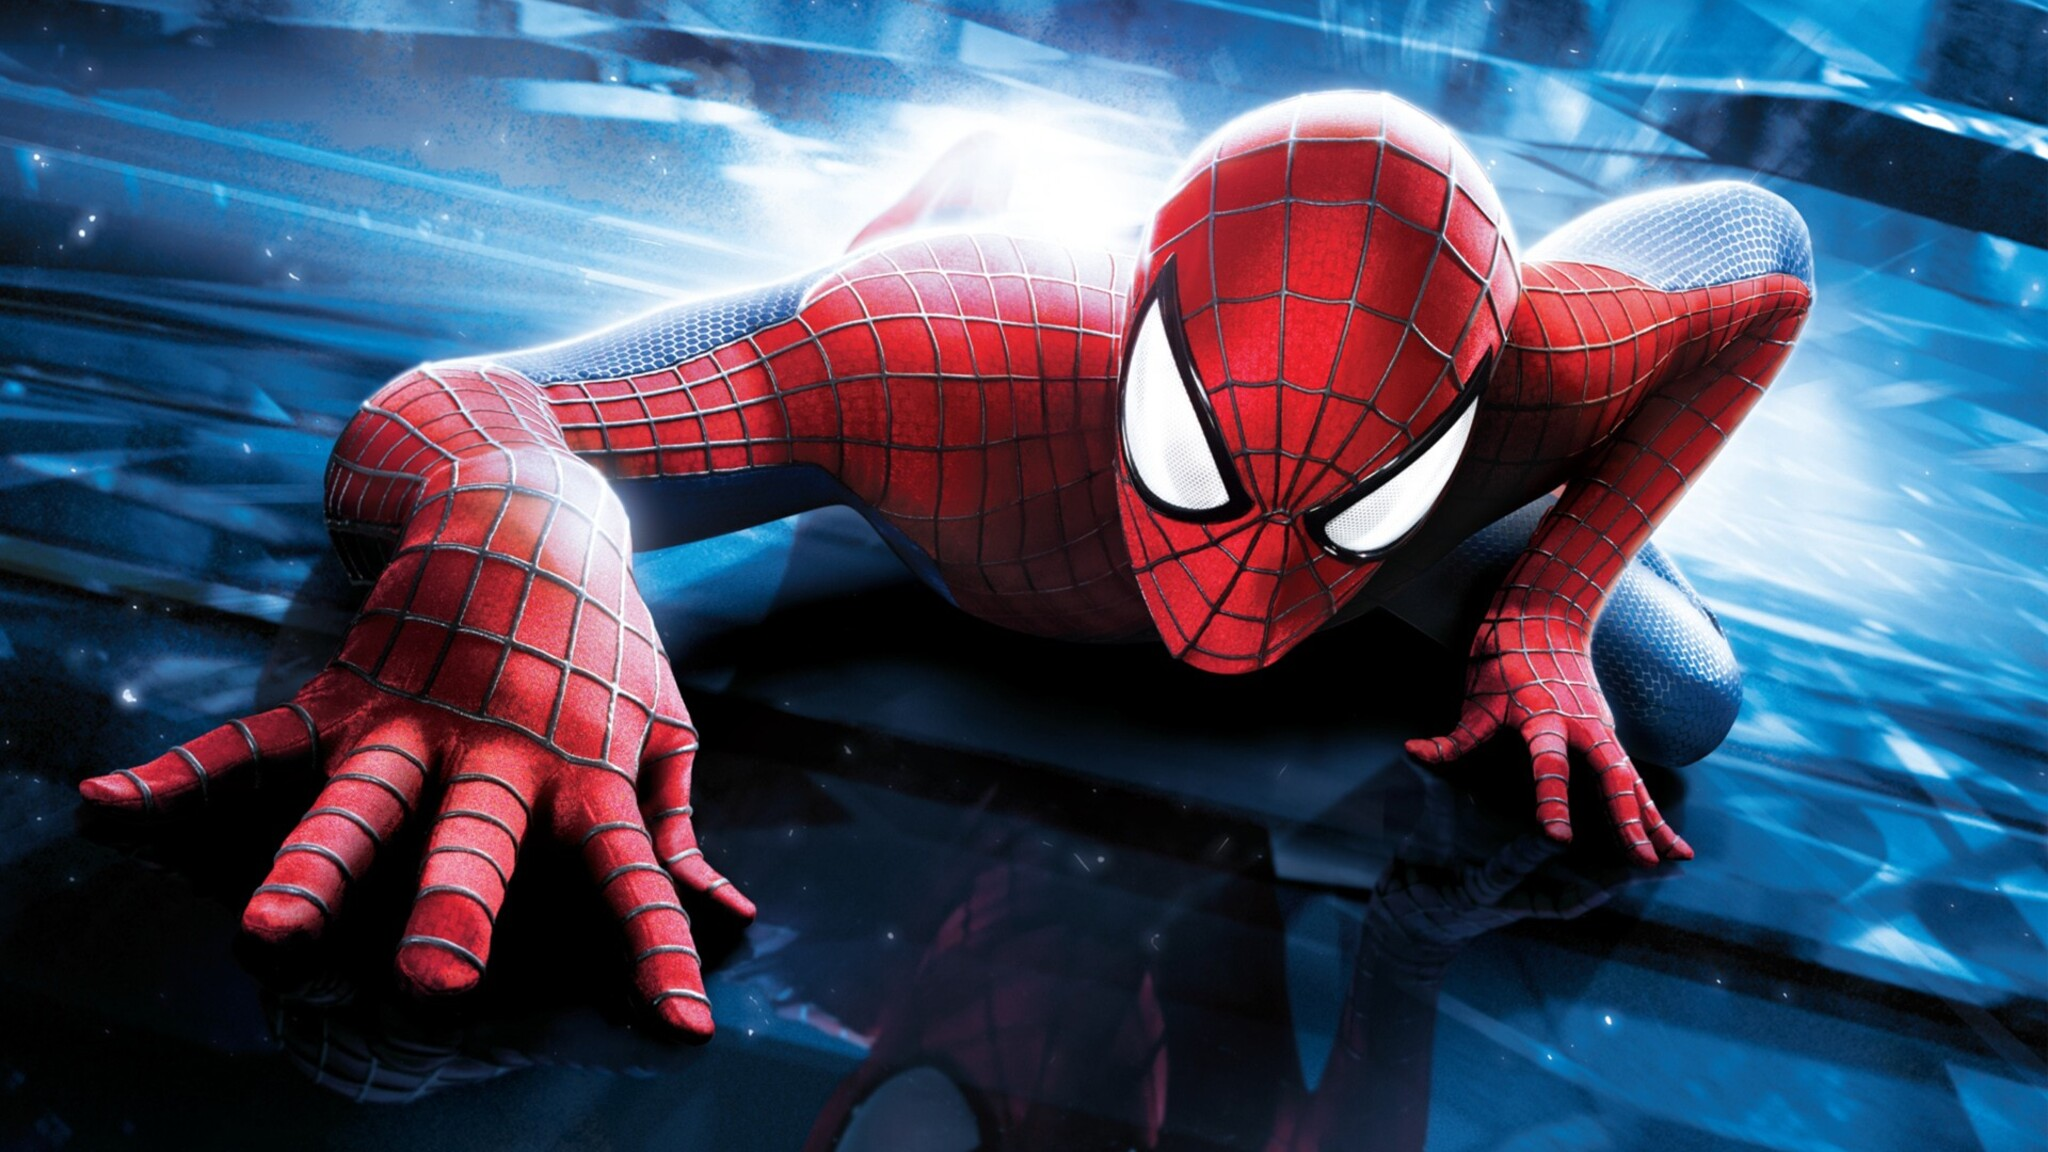 Amazing Spider Man 3d Wallpaper 2048x1152 Spiderman 2048x1152 Resolution Hd 4k Wallpapers